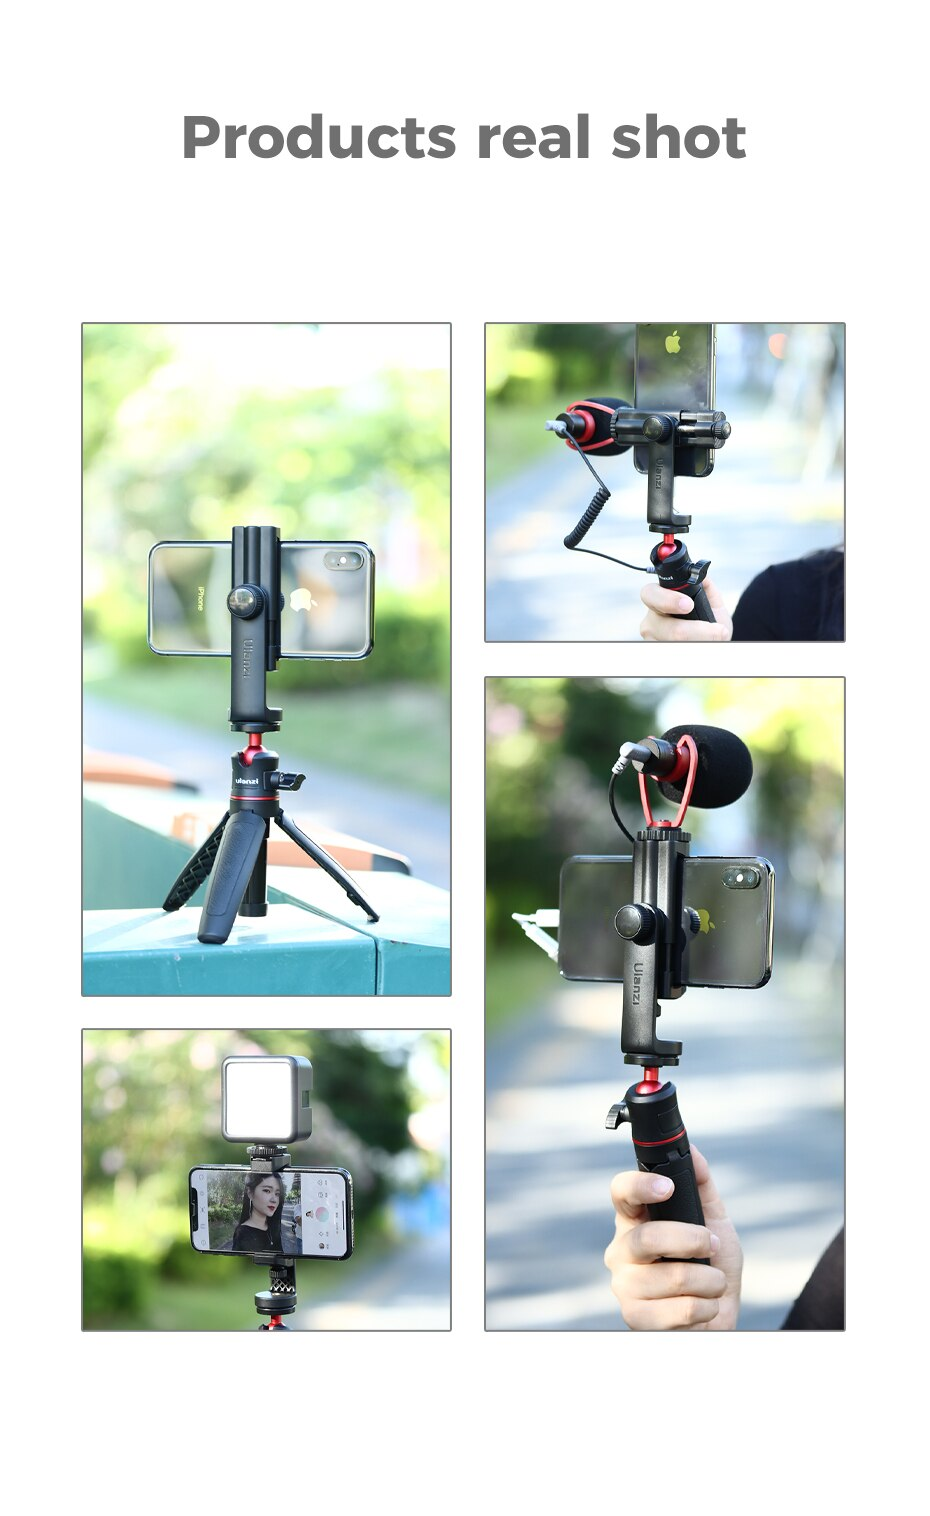 Hb4e2cc3dc0f1438098097c4c5e1bf5acq - Ulanzi ST-17 Universal Smartphone Clip Mount Holder Cold Shoe Vlog Tripod Mount Vertical Shooting for Huawei iPhone Android